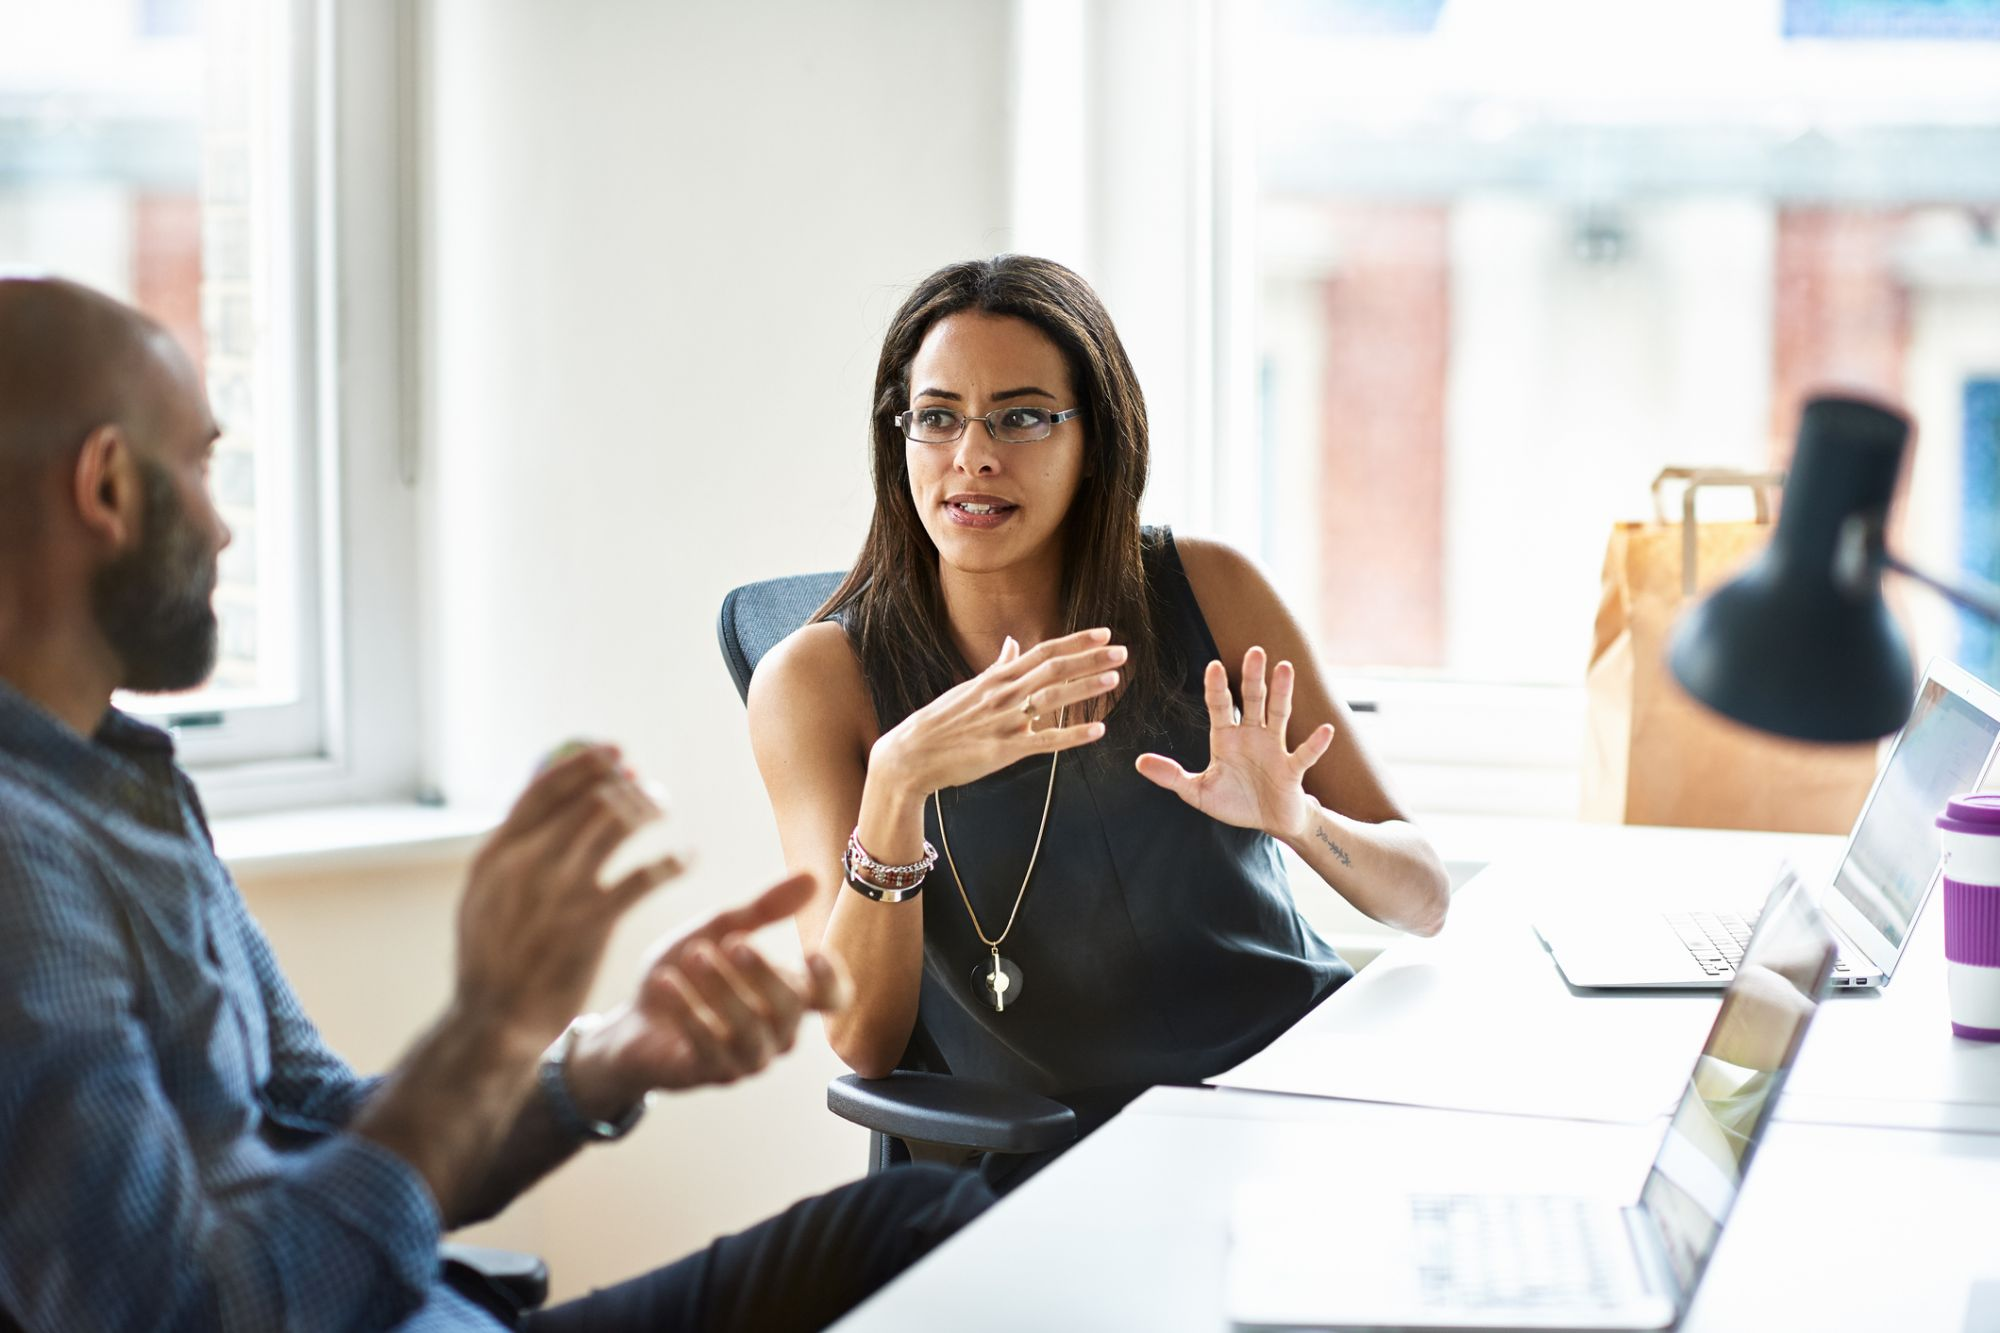 4 Reasons Emotional Intelligence Gives Women an Upper Hand as Negotiators